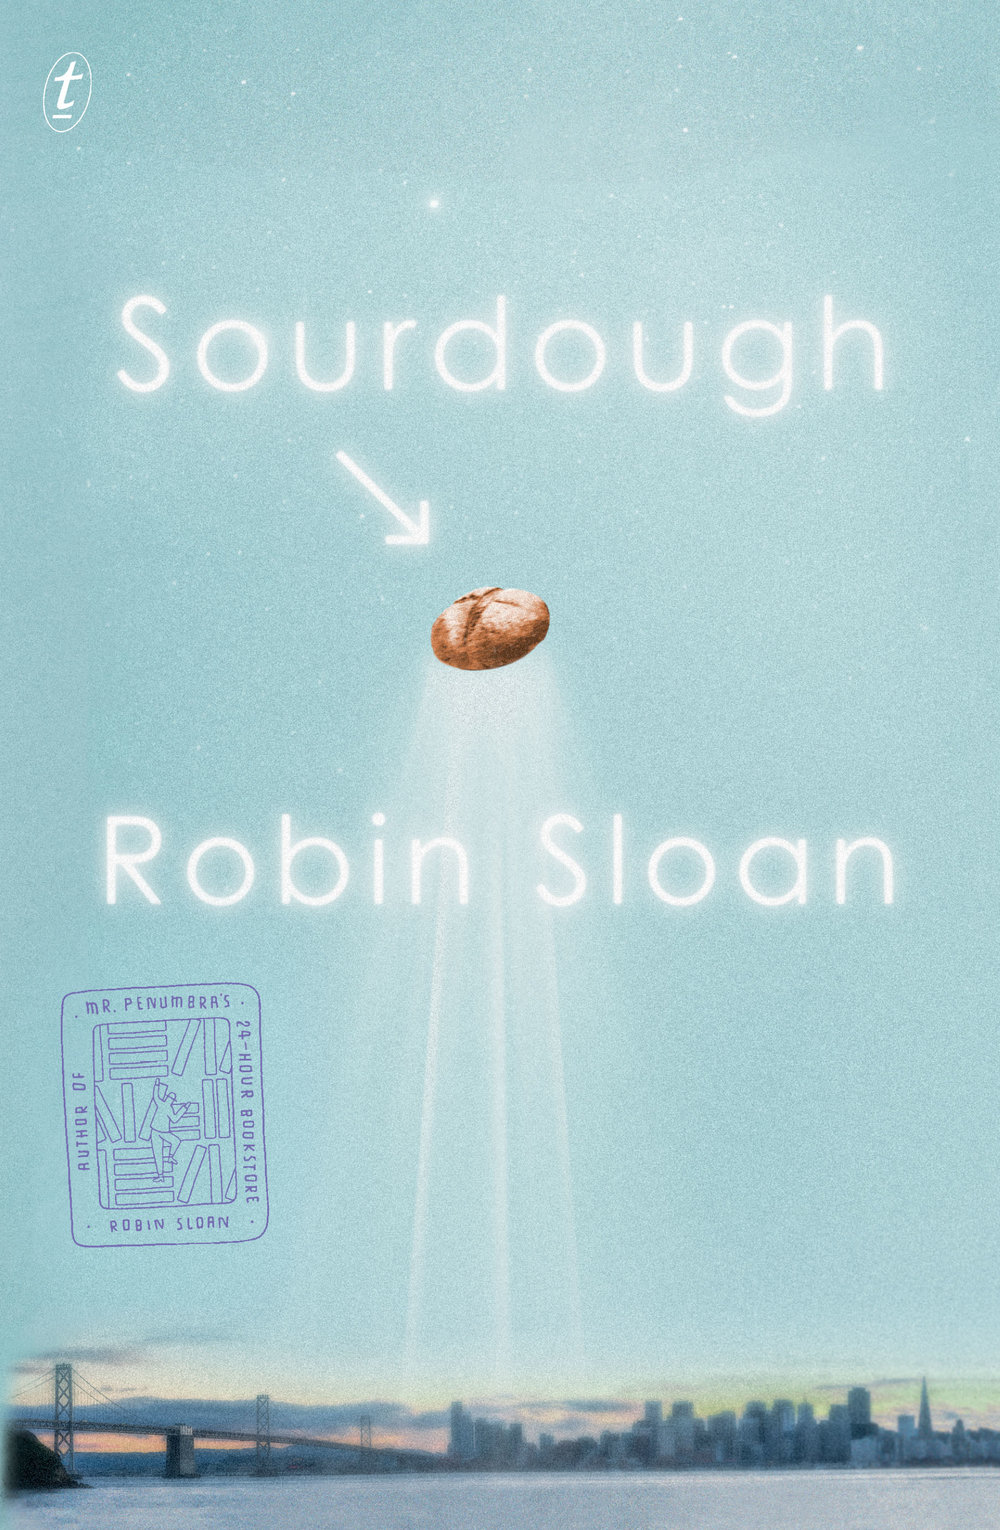 Sourdough by Robin Sloan - When Jen offered to write today's book review, I knew my readers and I would all be in for a treat! Jen has the best taste in books (which makes sense as she's a librarian) and her reviews are always great. I had never heard of the book Sourdough until she brought it up and upon reading the review, I picked it up on Audible.com. Check it out, guys: